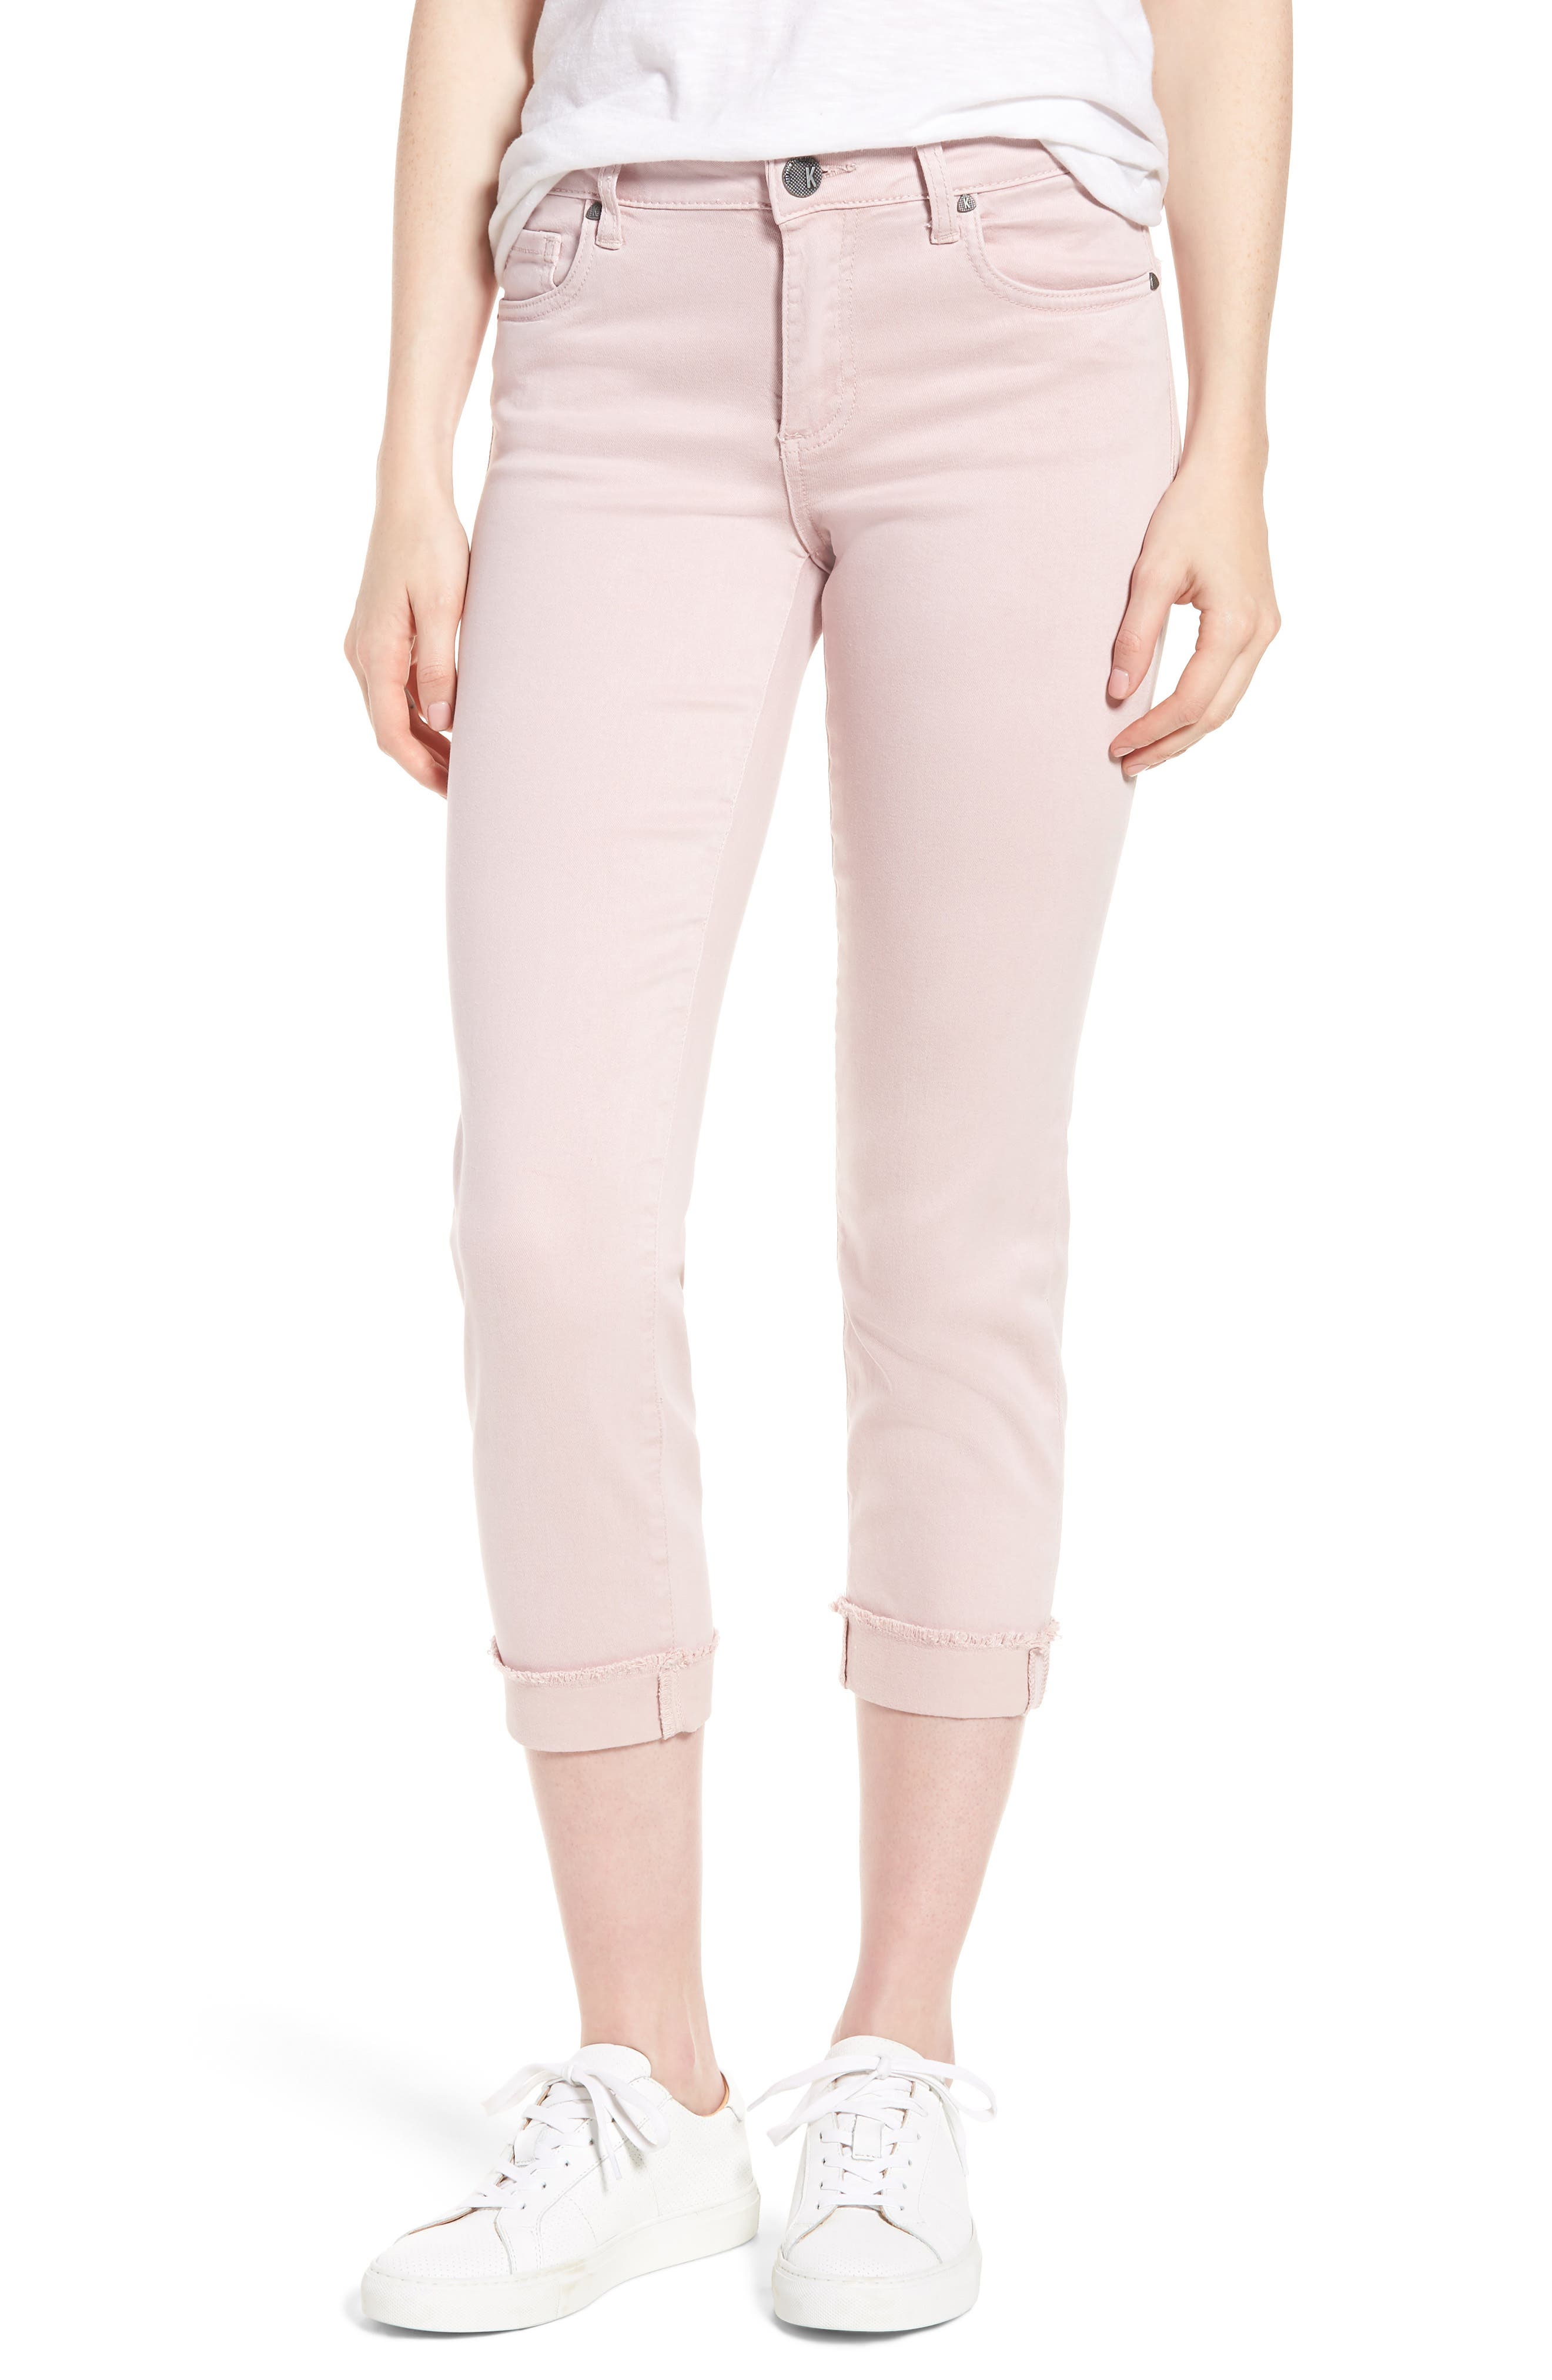 KUT from the Kloth Amy Crop Skinny Jeans,                         Main,                         color, Rose